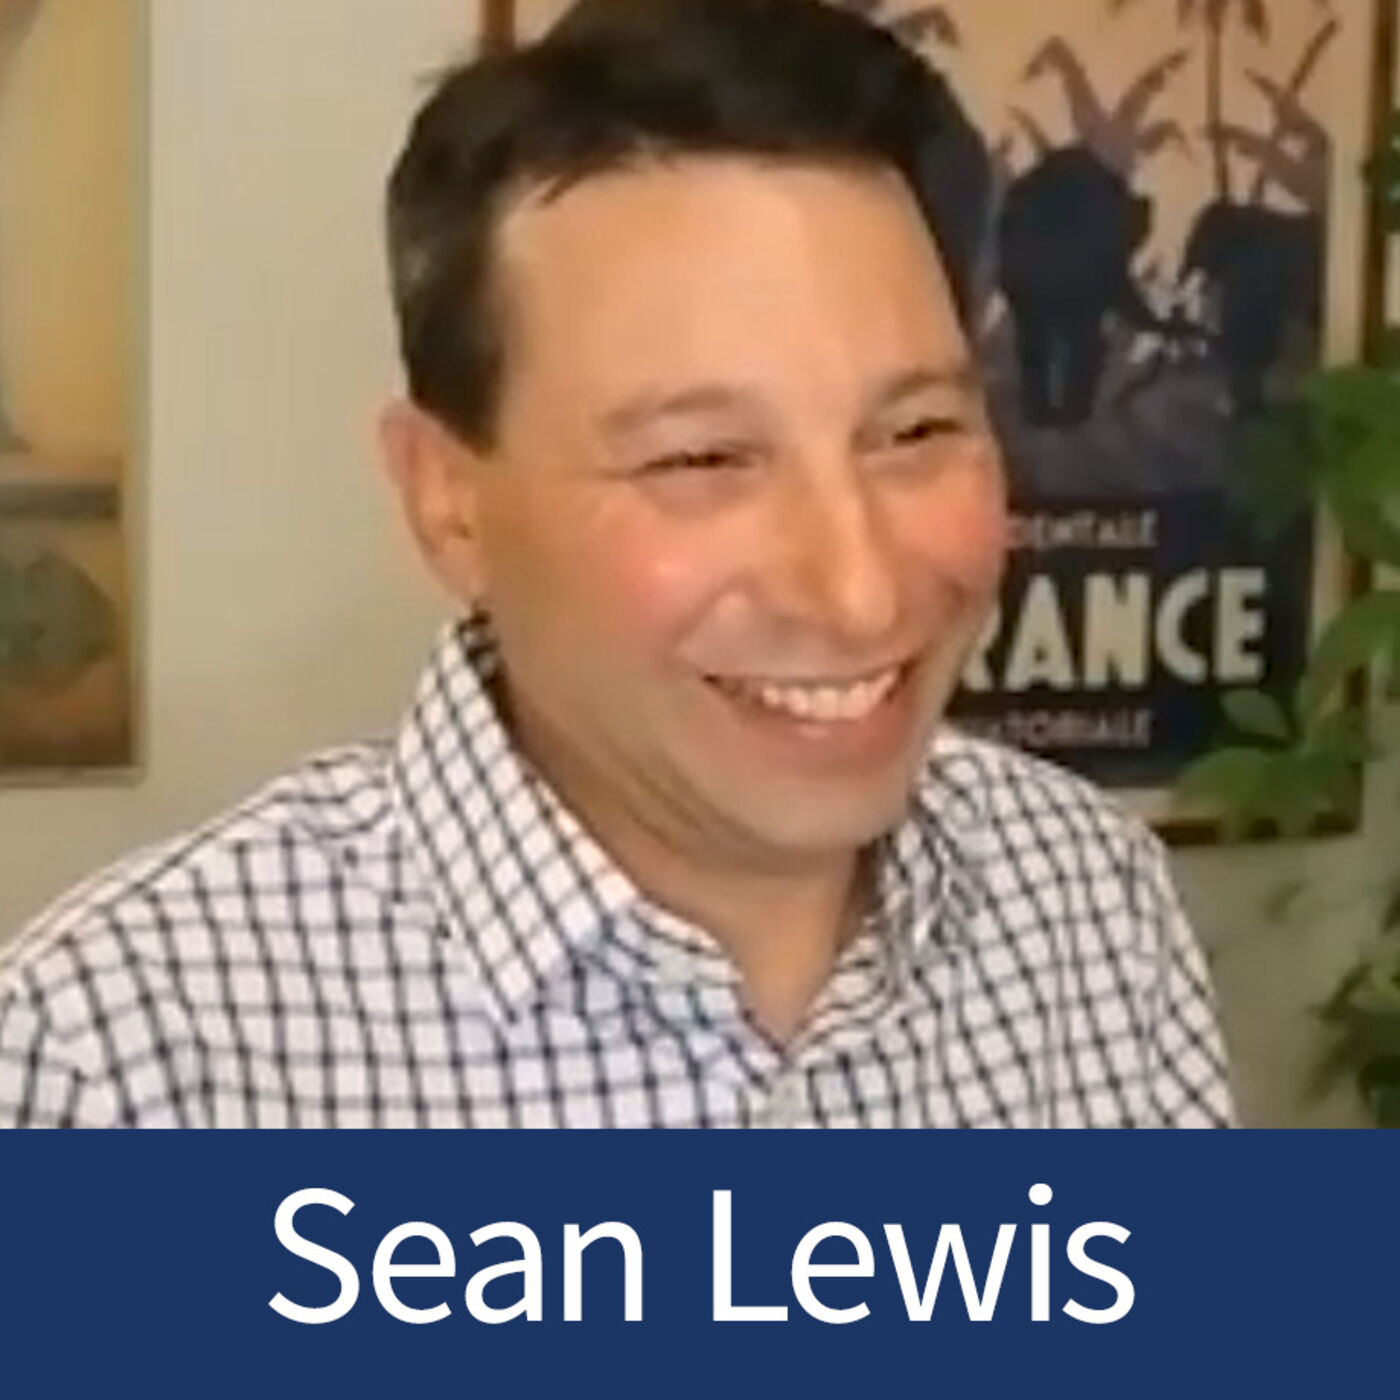 Sean Lewis - SLC Advisory Group - Love Your Business - Smarter Business Podcast - Episode 18